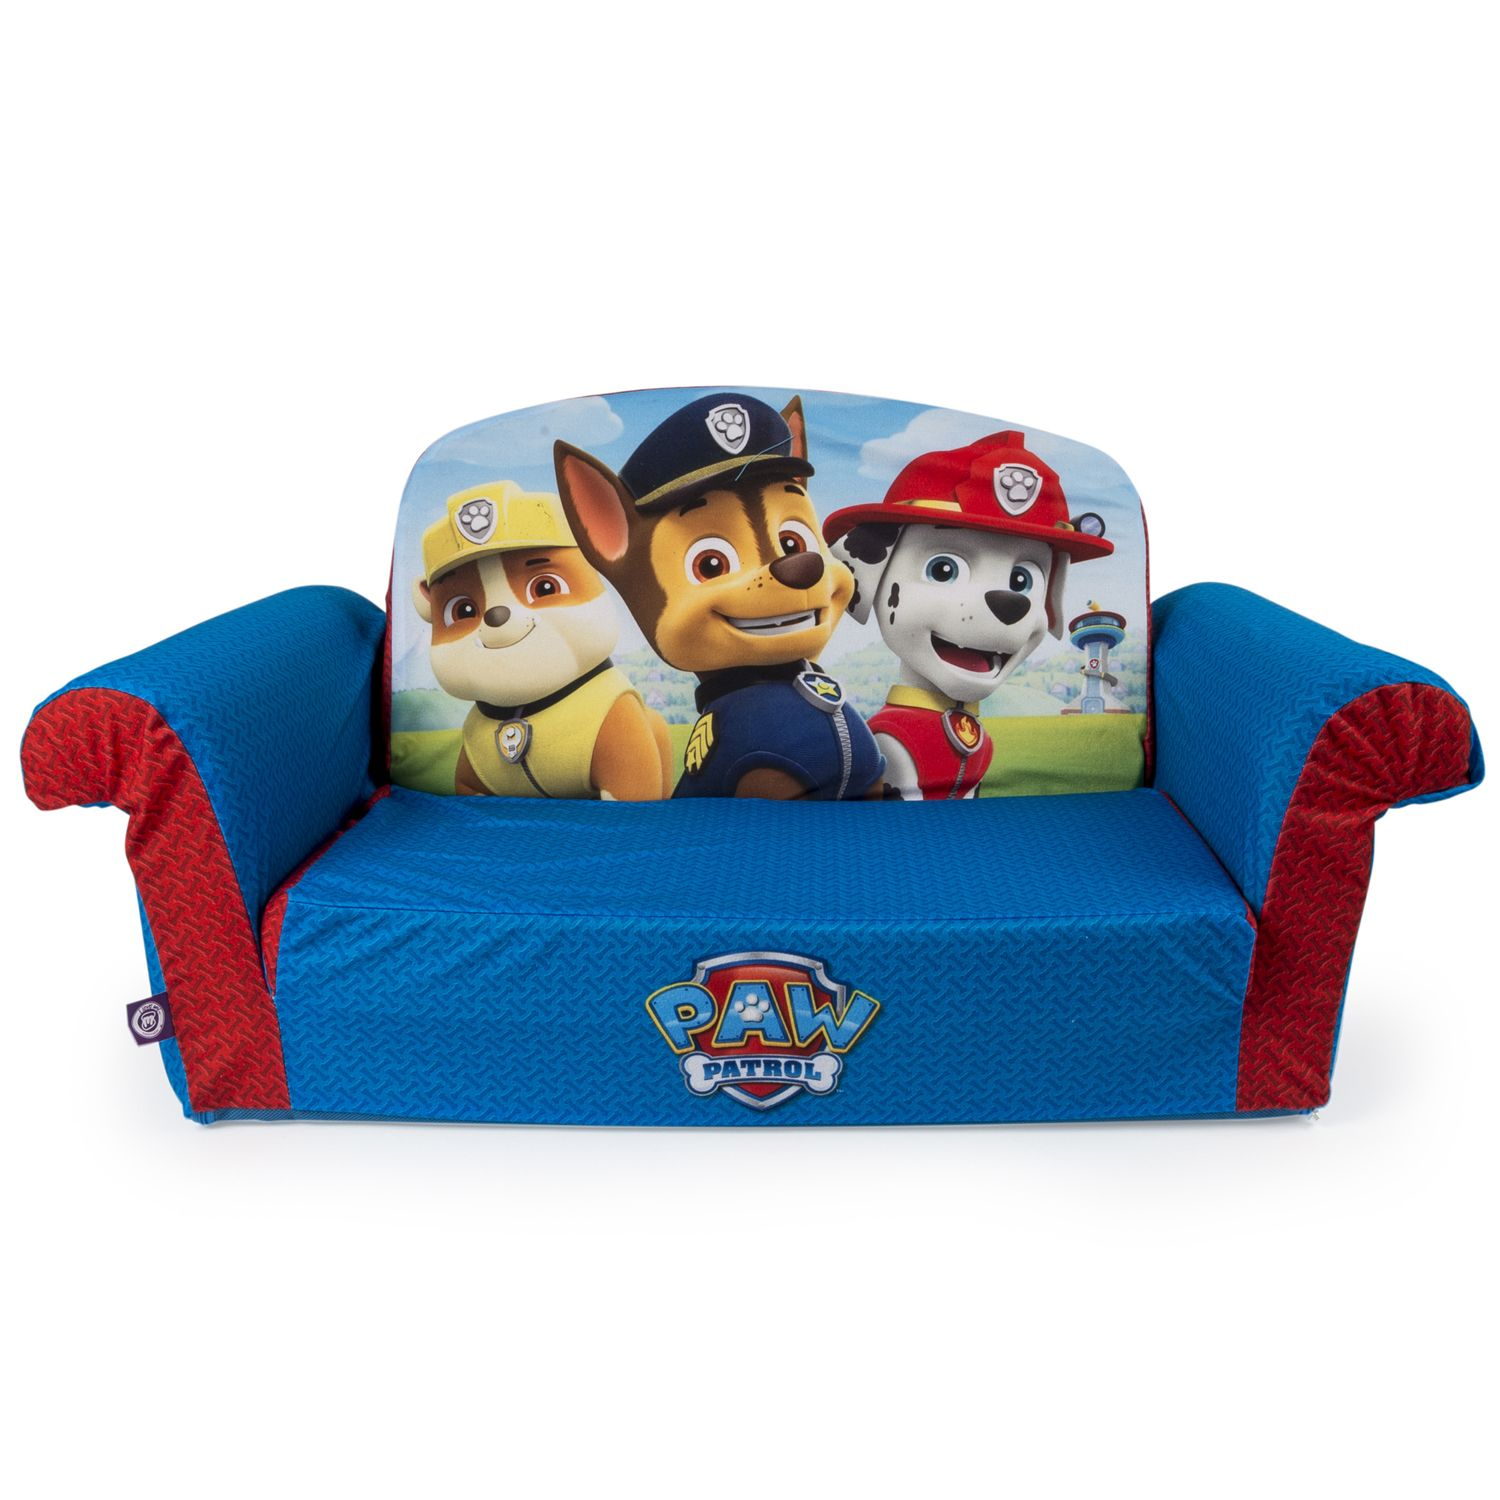 Paw Patrol 2 In 1 Flip Open Sofa By Marshmallow Furniture